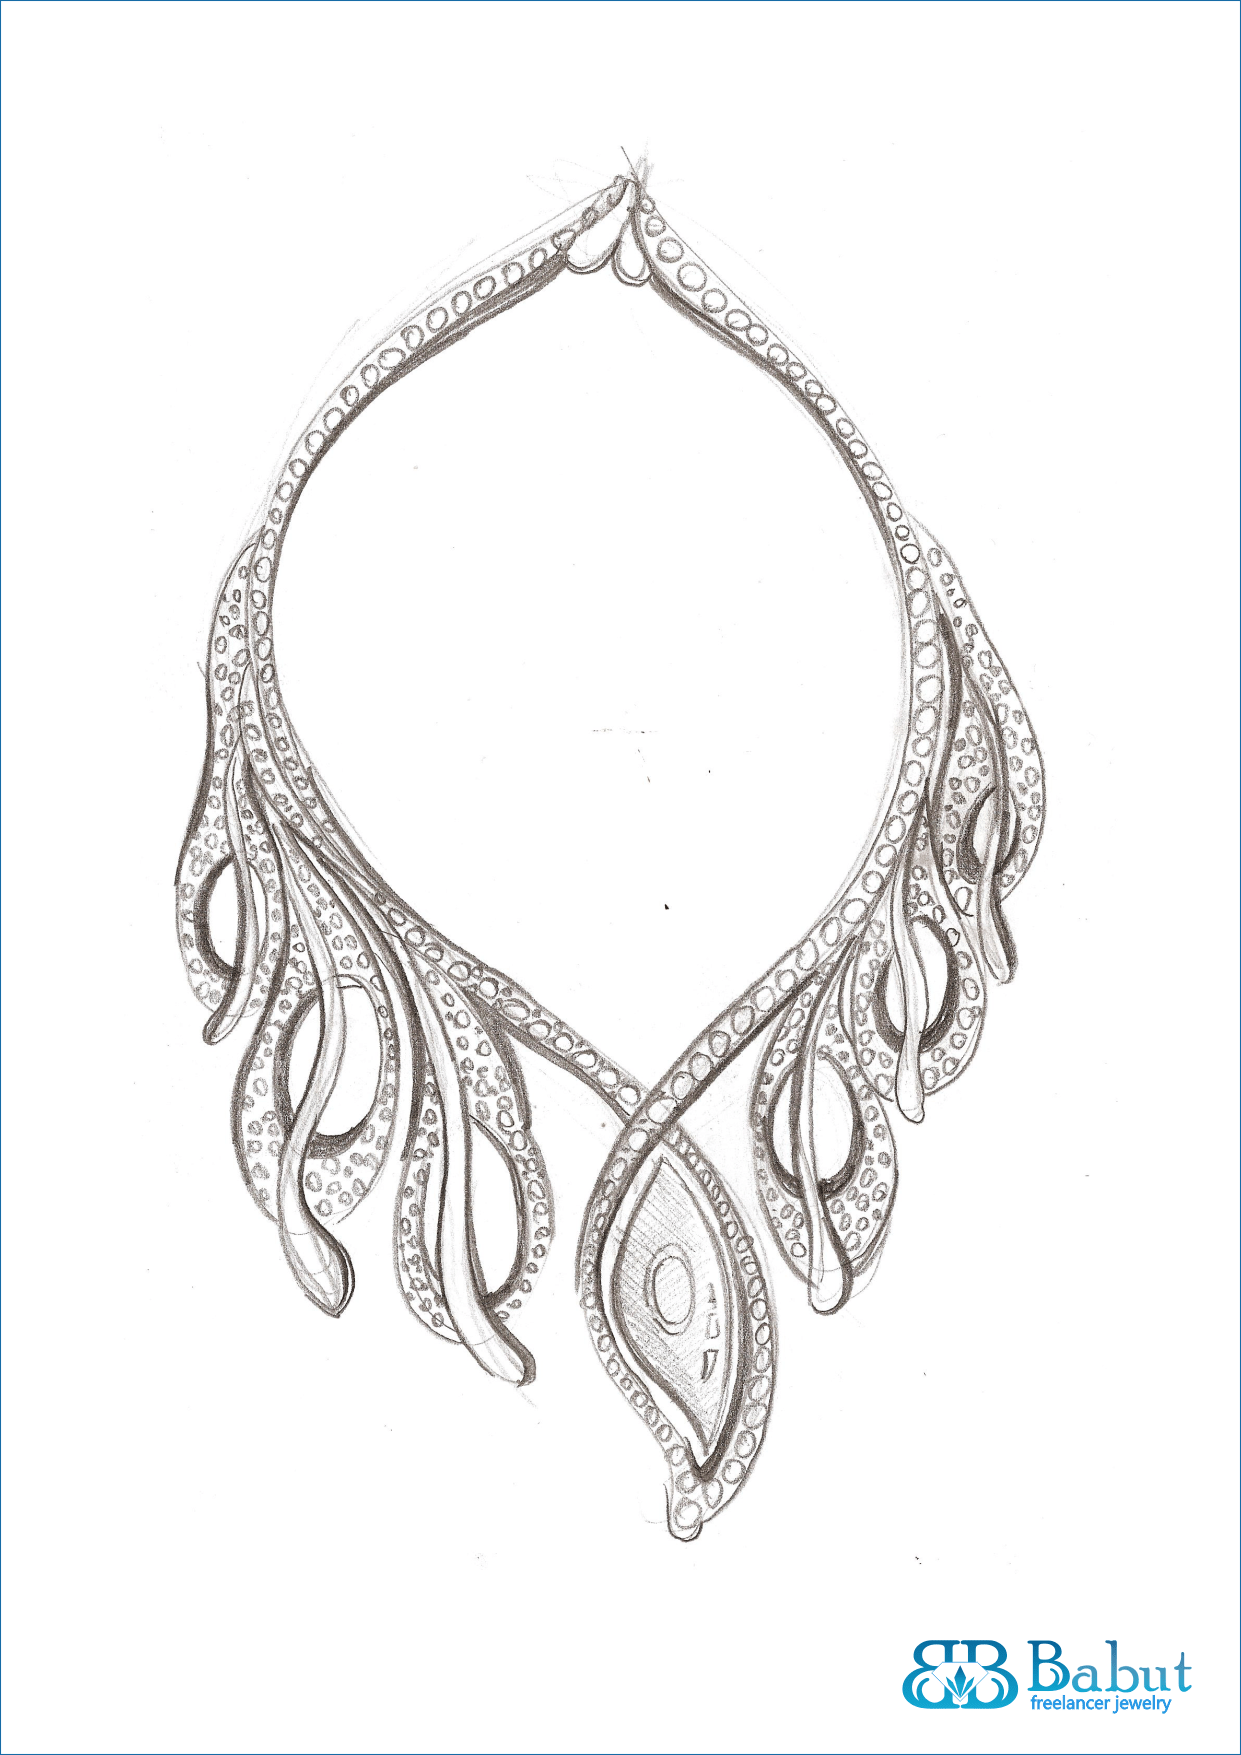 Sketches Jewelry Design